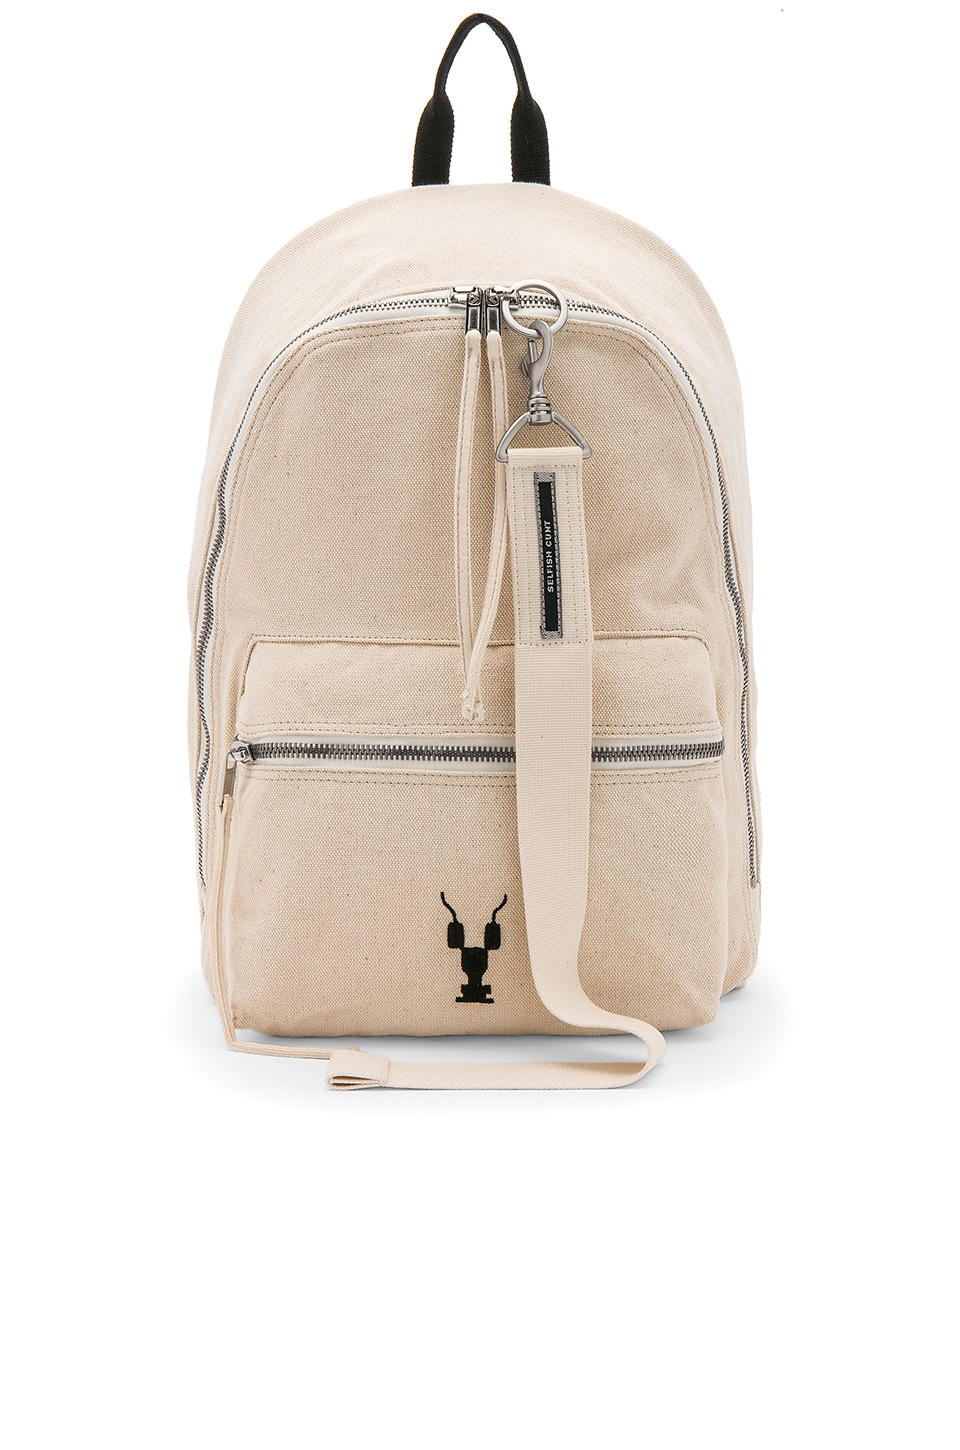 Zaino Backpack by DRKSHDW by Rick Owens